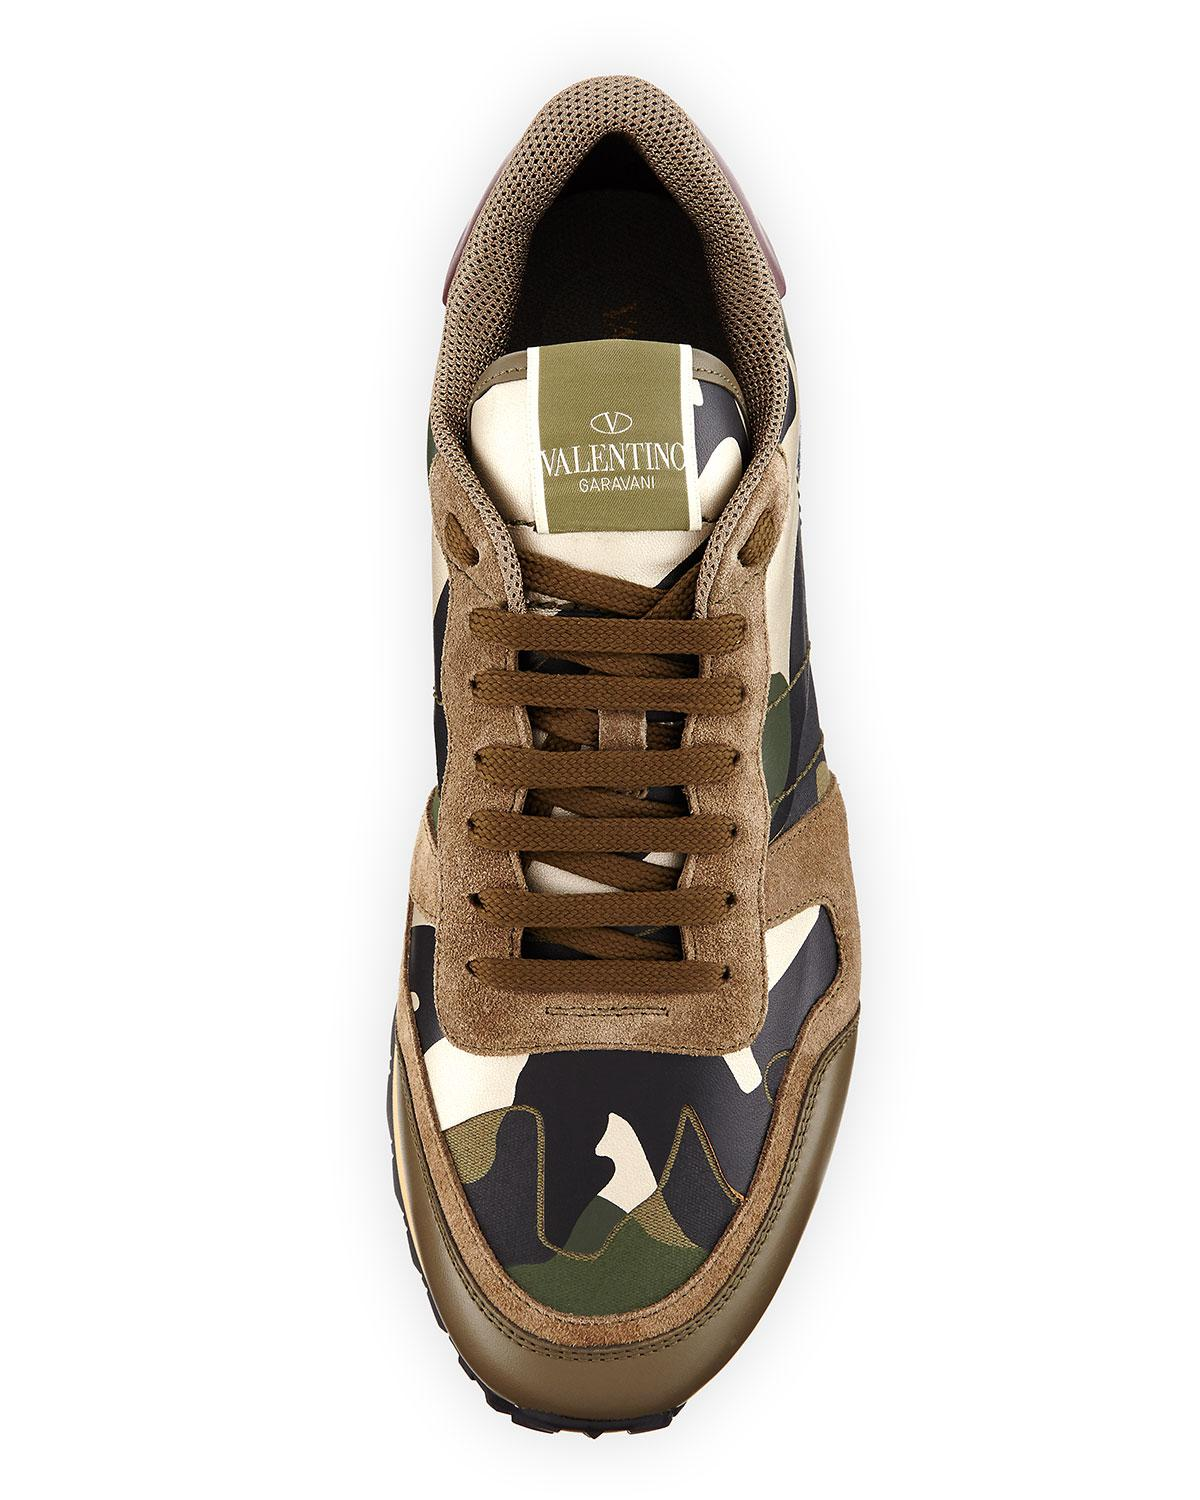 77524389d68b Lyst - Valentino Men s Rockrunner Laminate Camo Leather Trainer ...